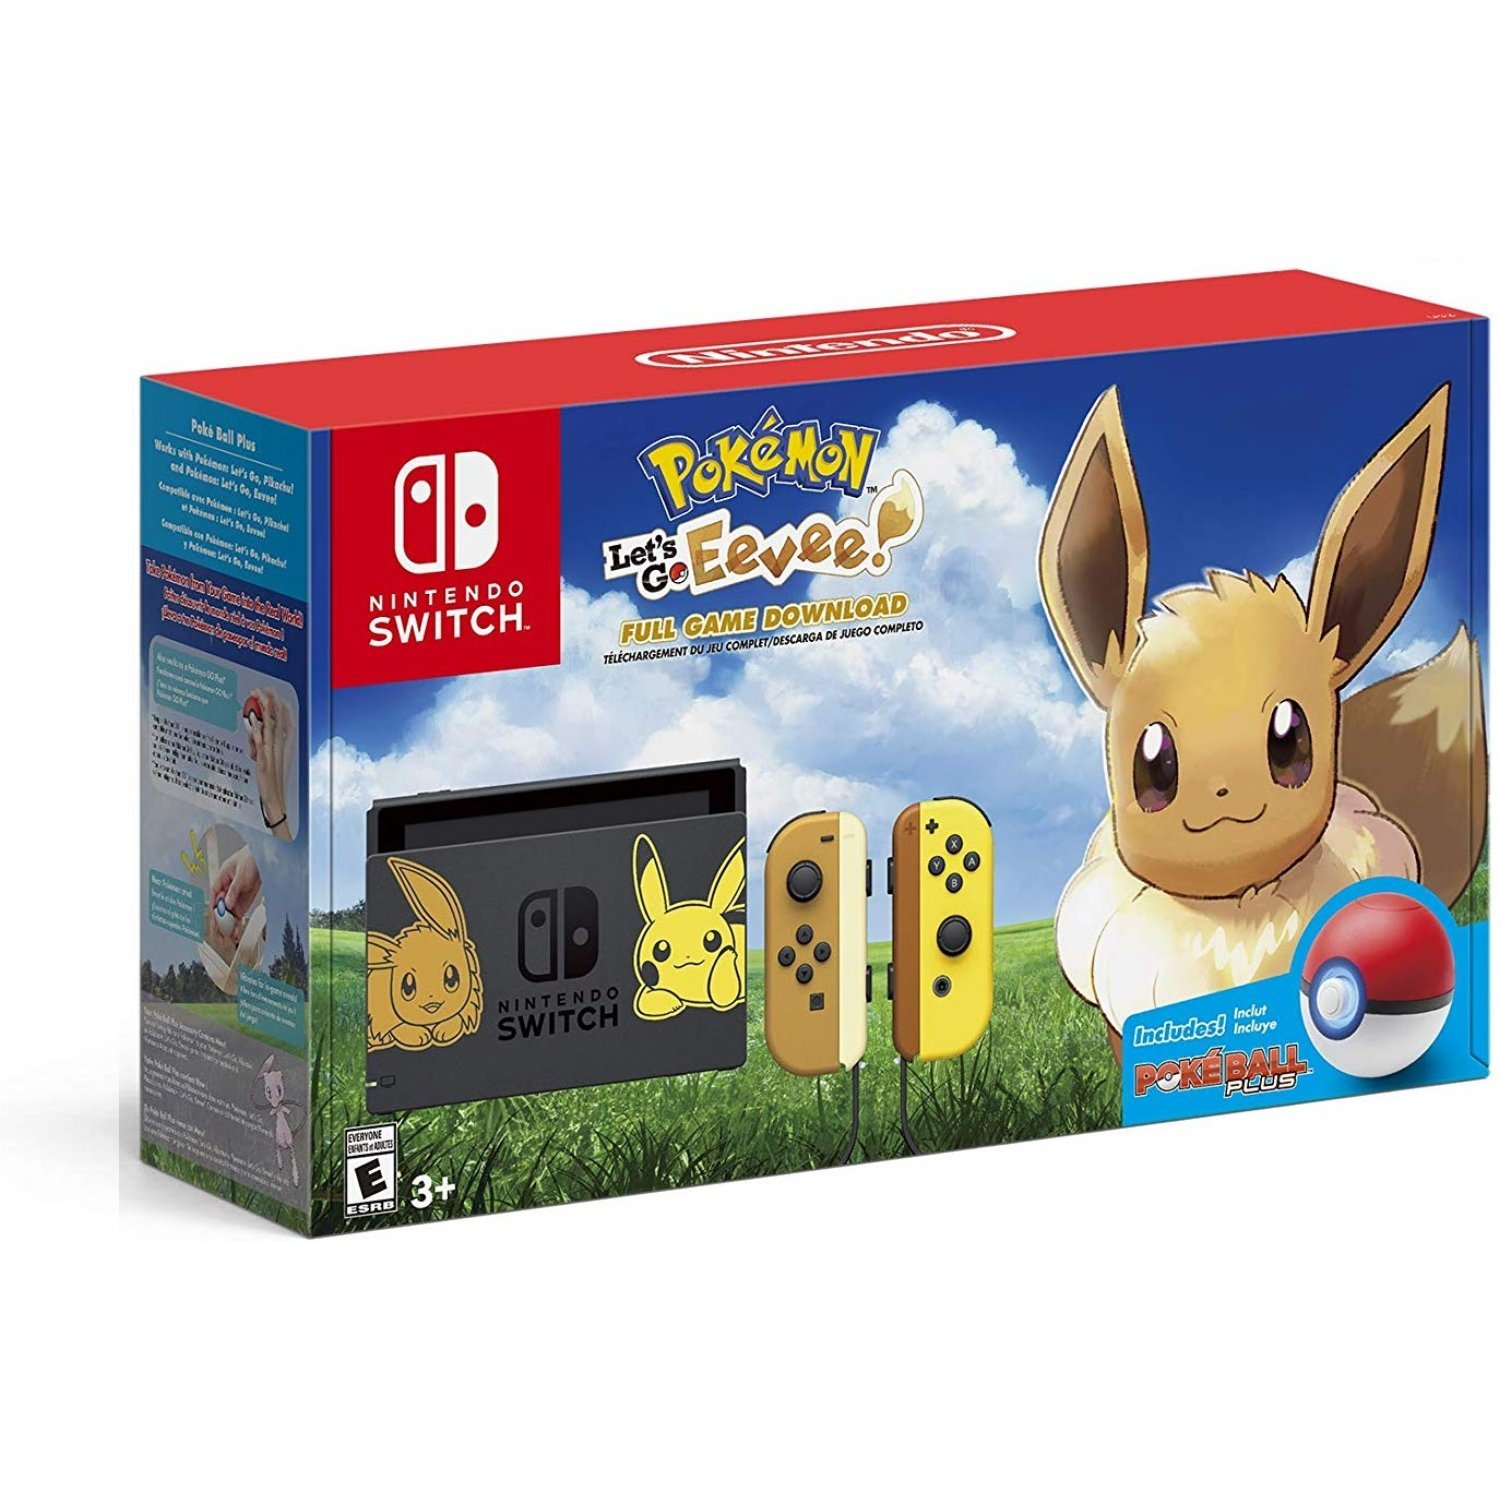 nintendo-switch-pikachu-eevee-edition-with-pokmon-lets-go-eeve-573227.4.jpg